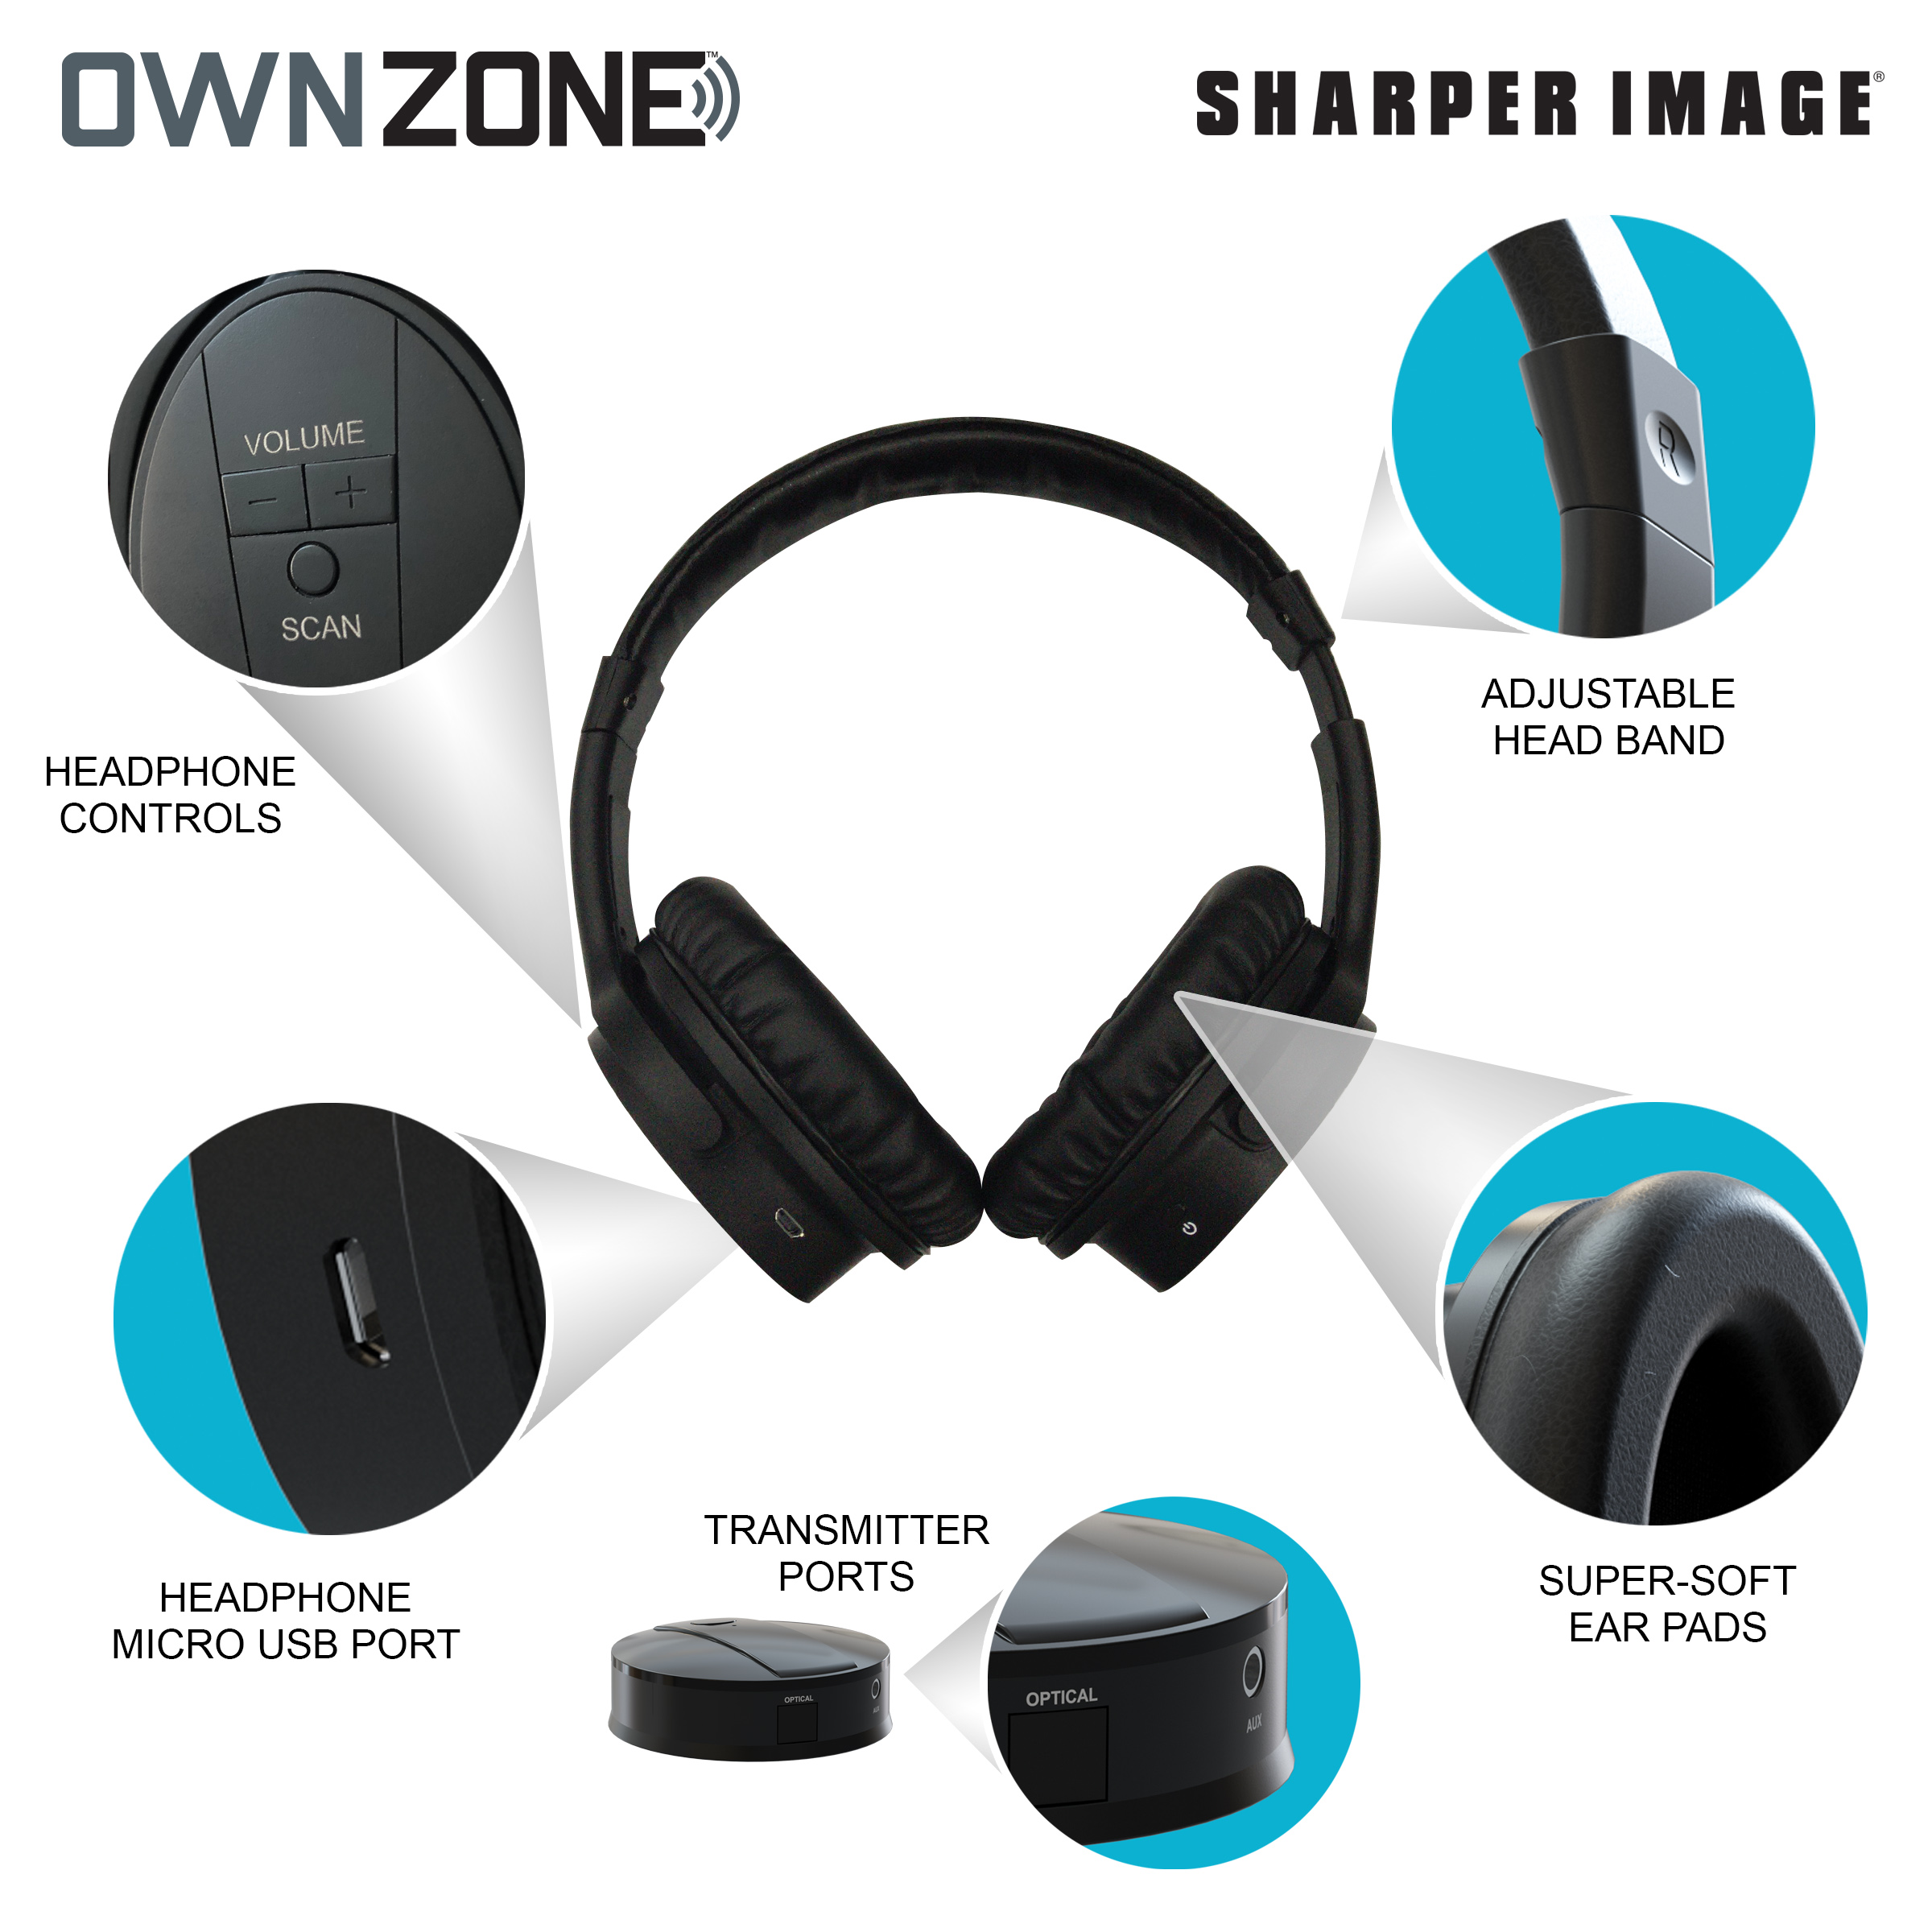 Own Zone Wireless Tv Headphones By Sharper Image Walmartcom